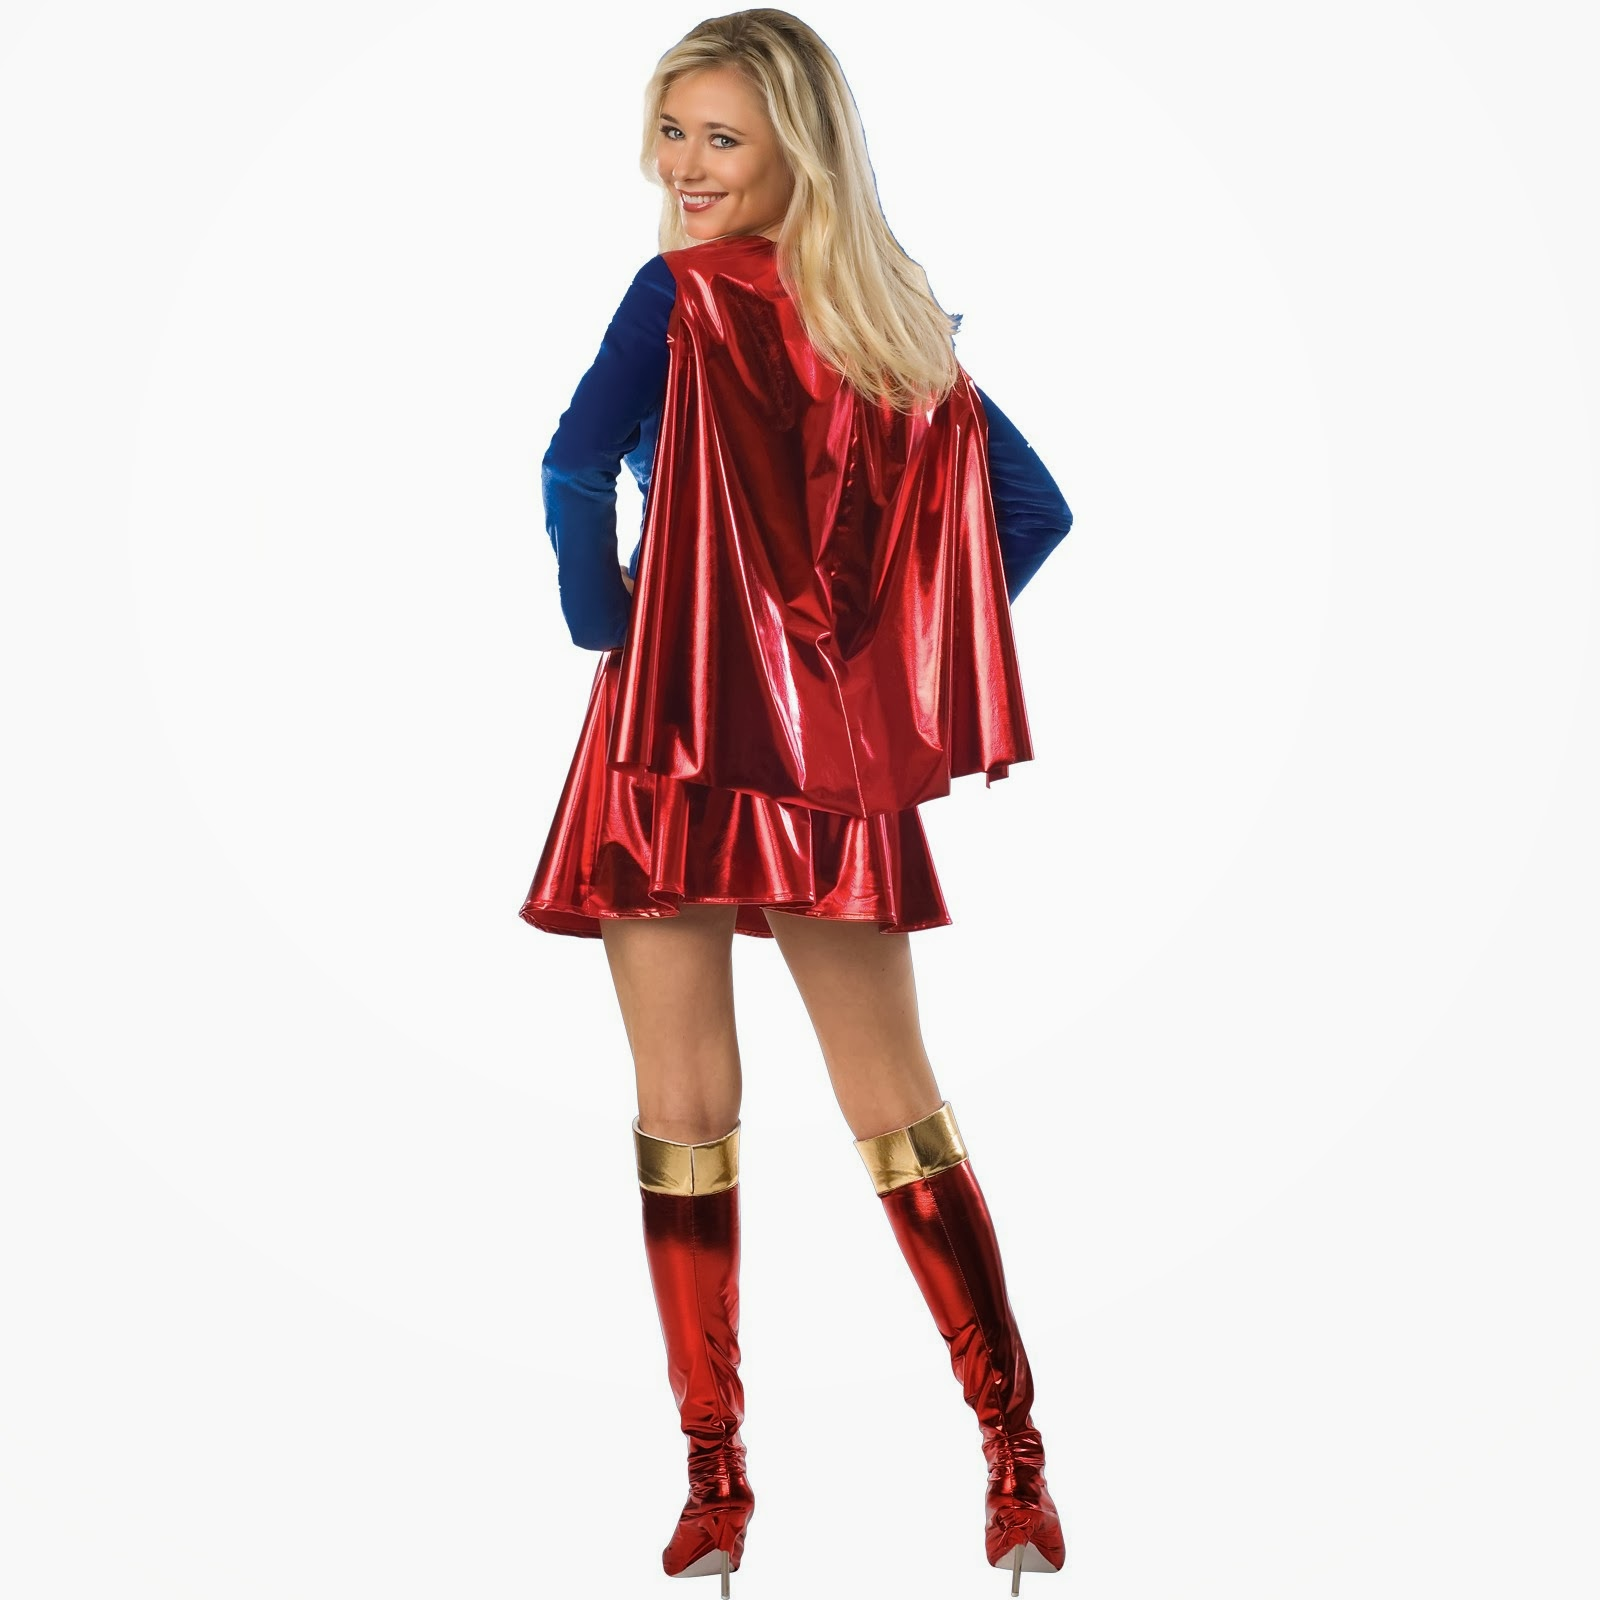 Hd Wallpapers Blog: Halloween Costumes For Women Ideas